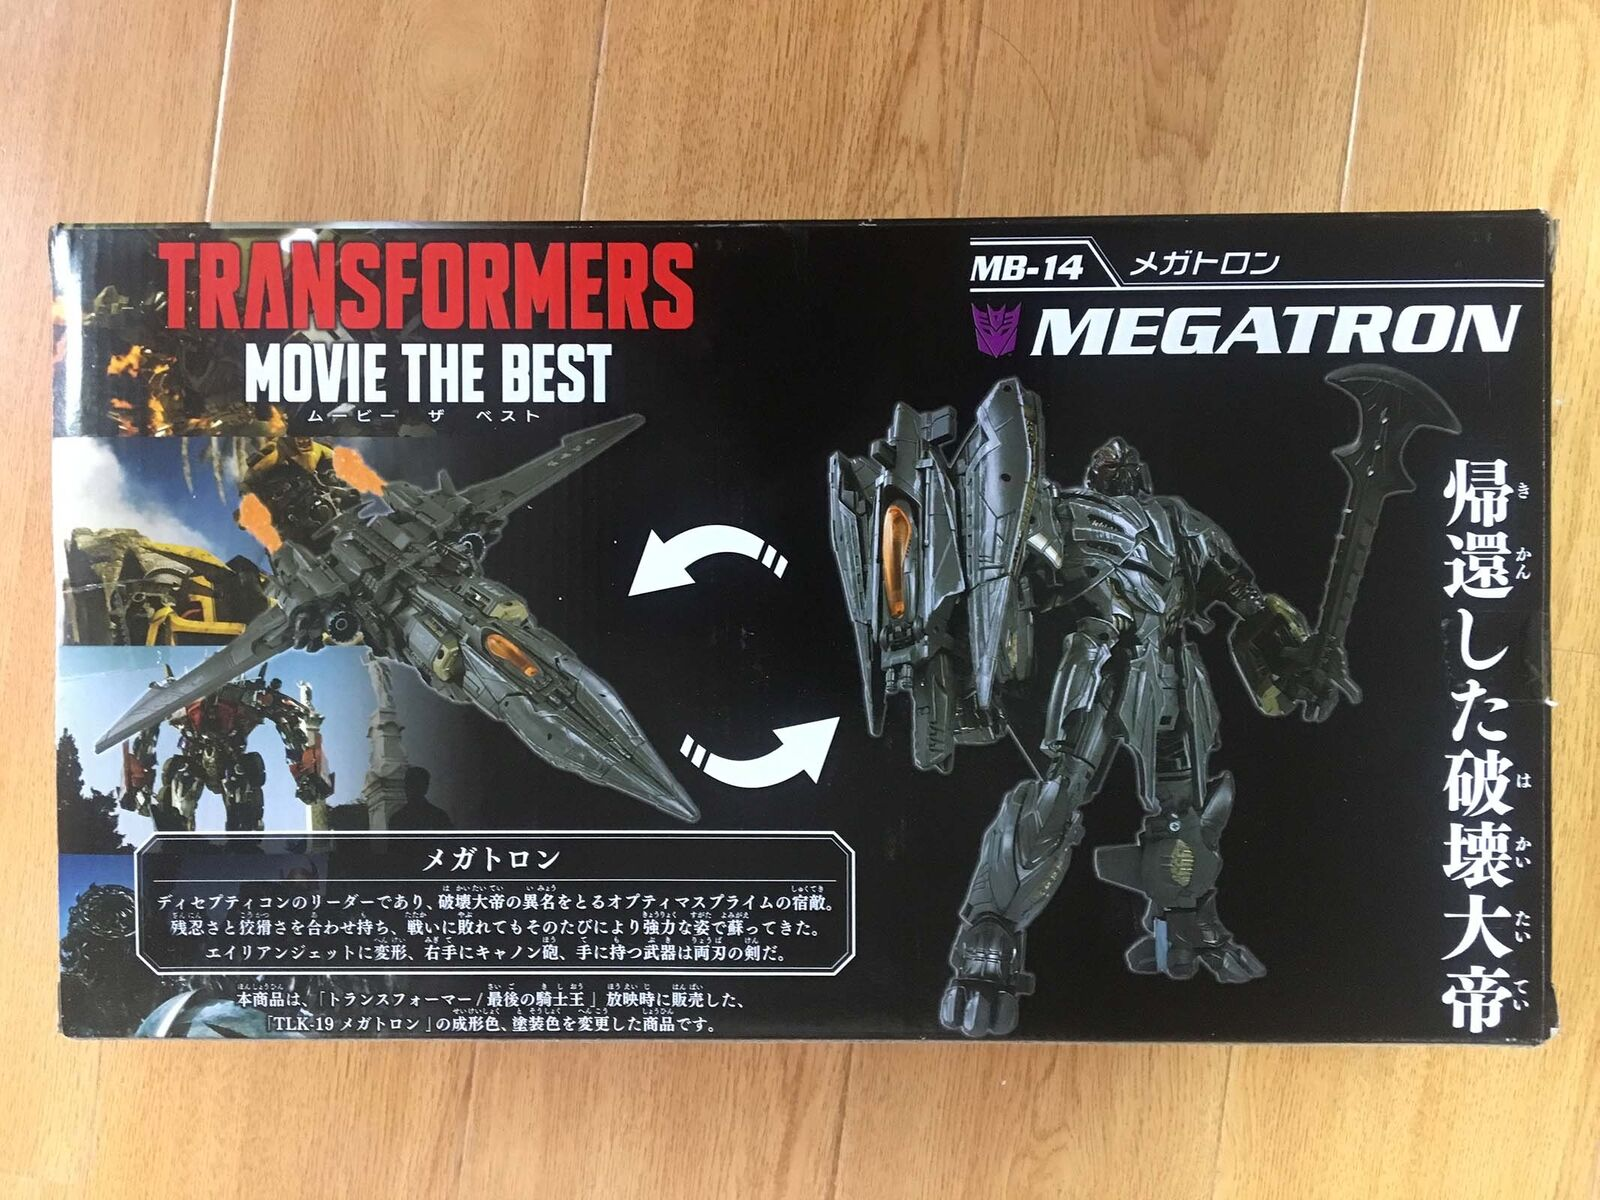 Transformer Movie The Best The Last Last Last Knight MB-14 Megatron Action Figure Kids Neu 41a221